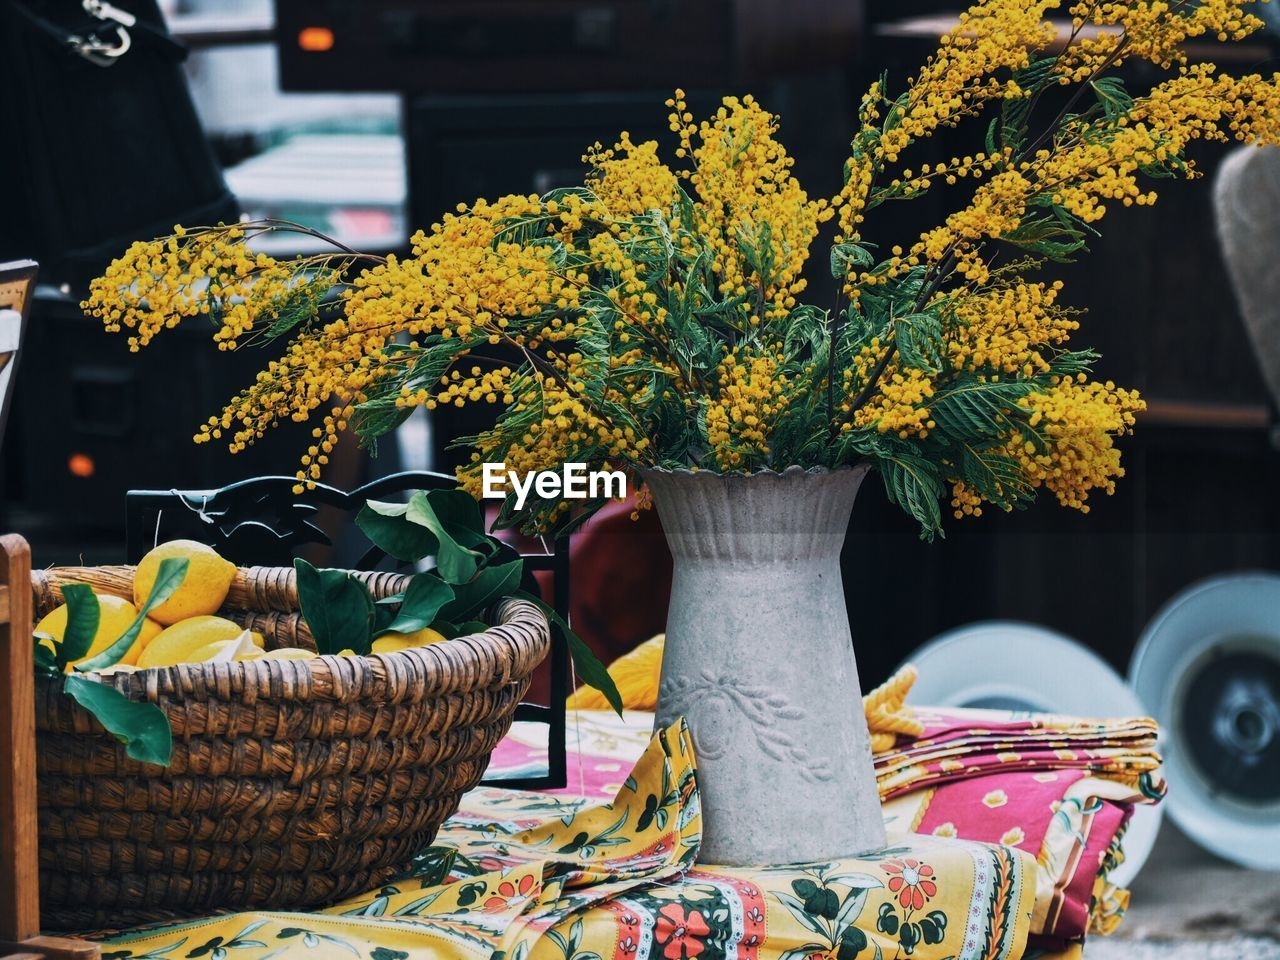 plant, flower, flowering plant, freshness, nature, focus on foreground, beauty in nature, growth, no people, vulnerability, table, fragility, day, leaf, plant part, yellow, basket, close-up, decoration, potted plant, outdoors, flower head, flower arrangement, flower pot, bouquet